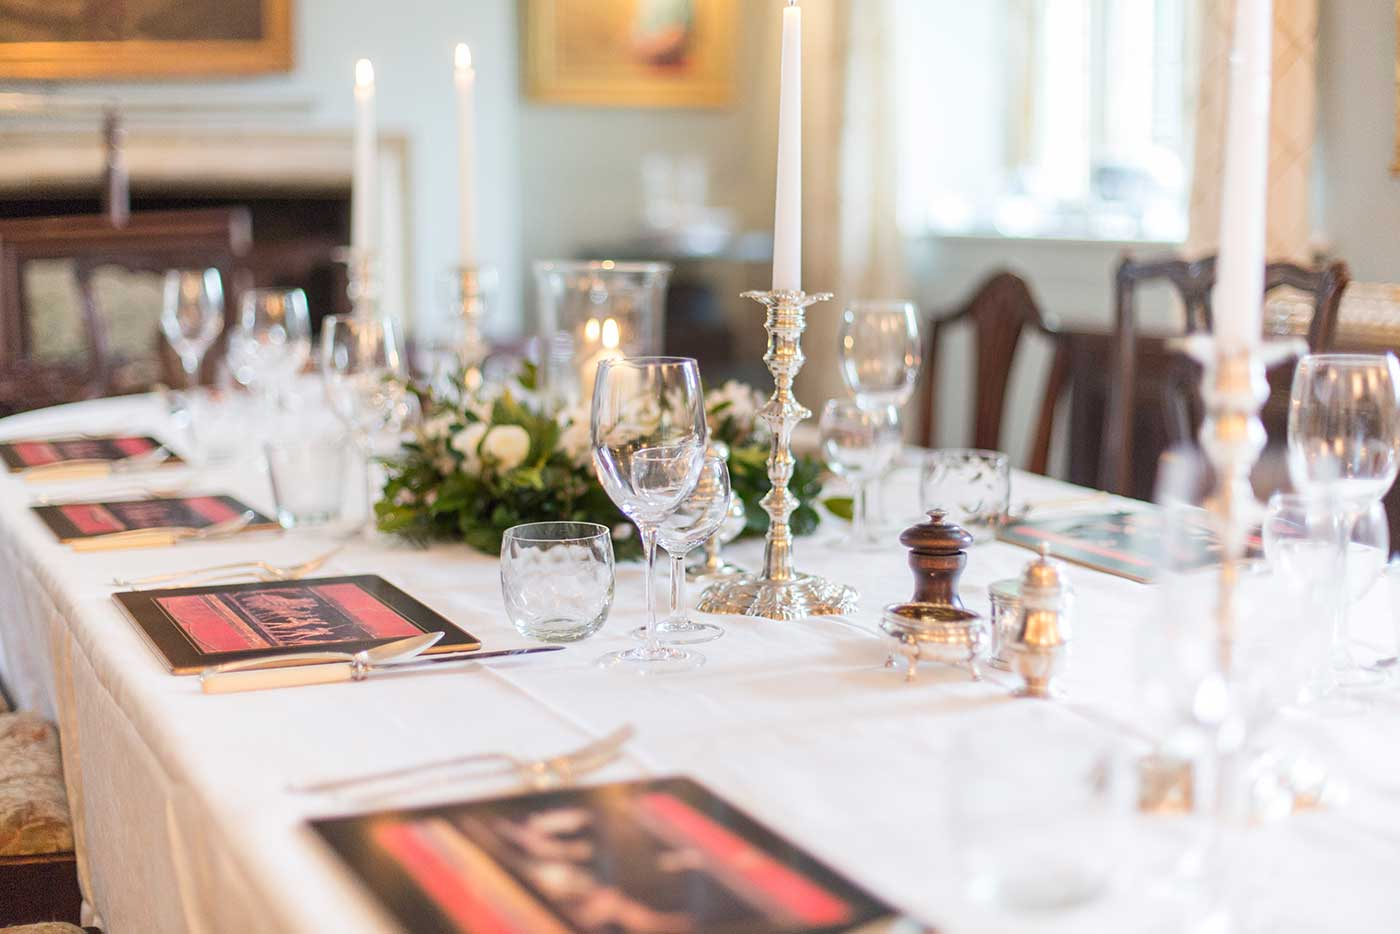 Private dining at Midelney Manor